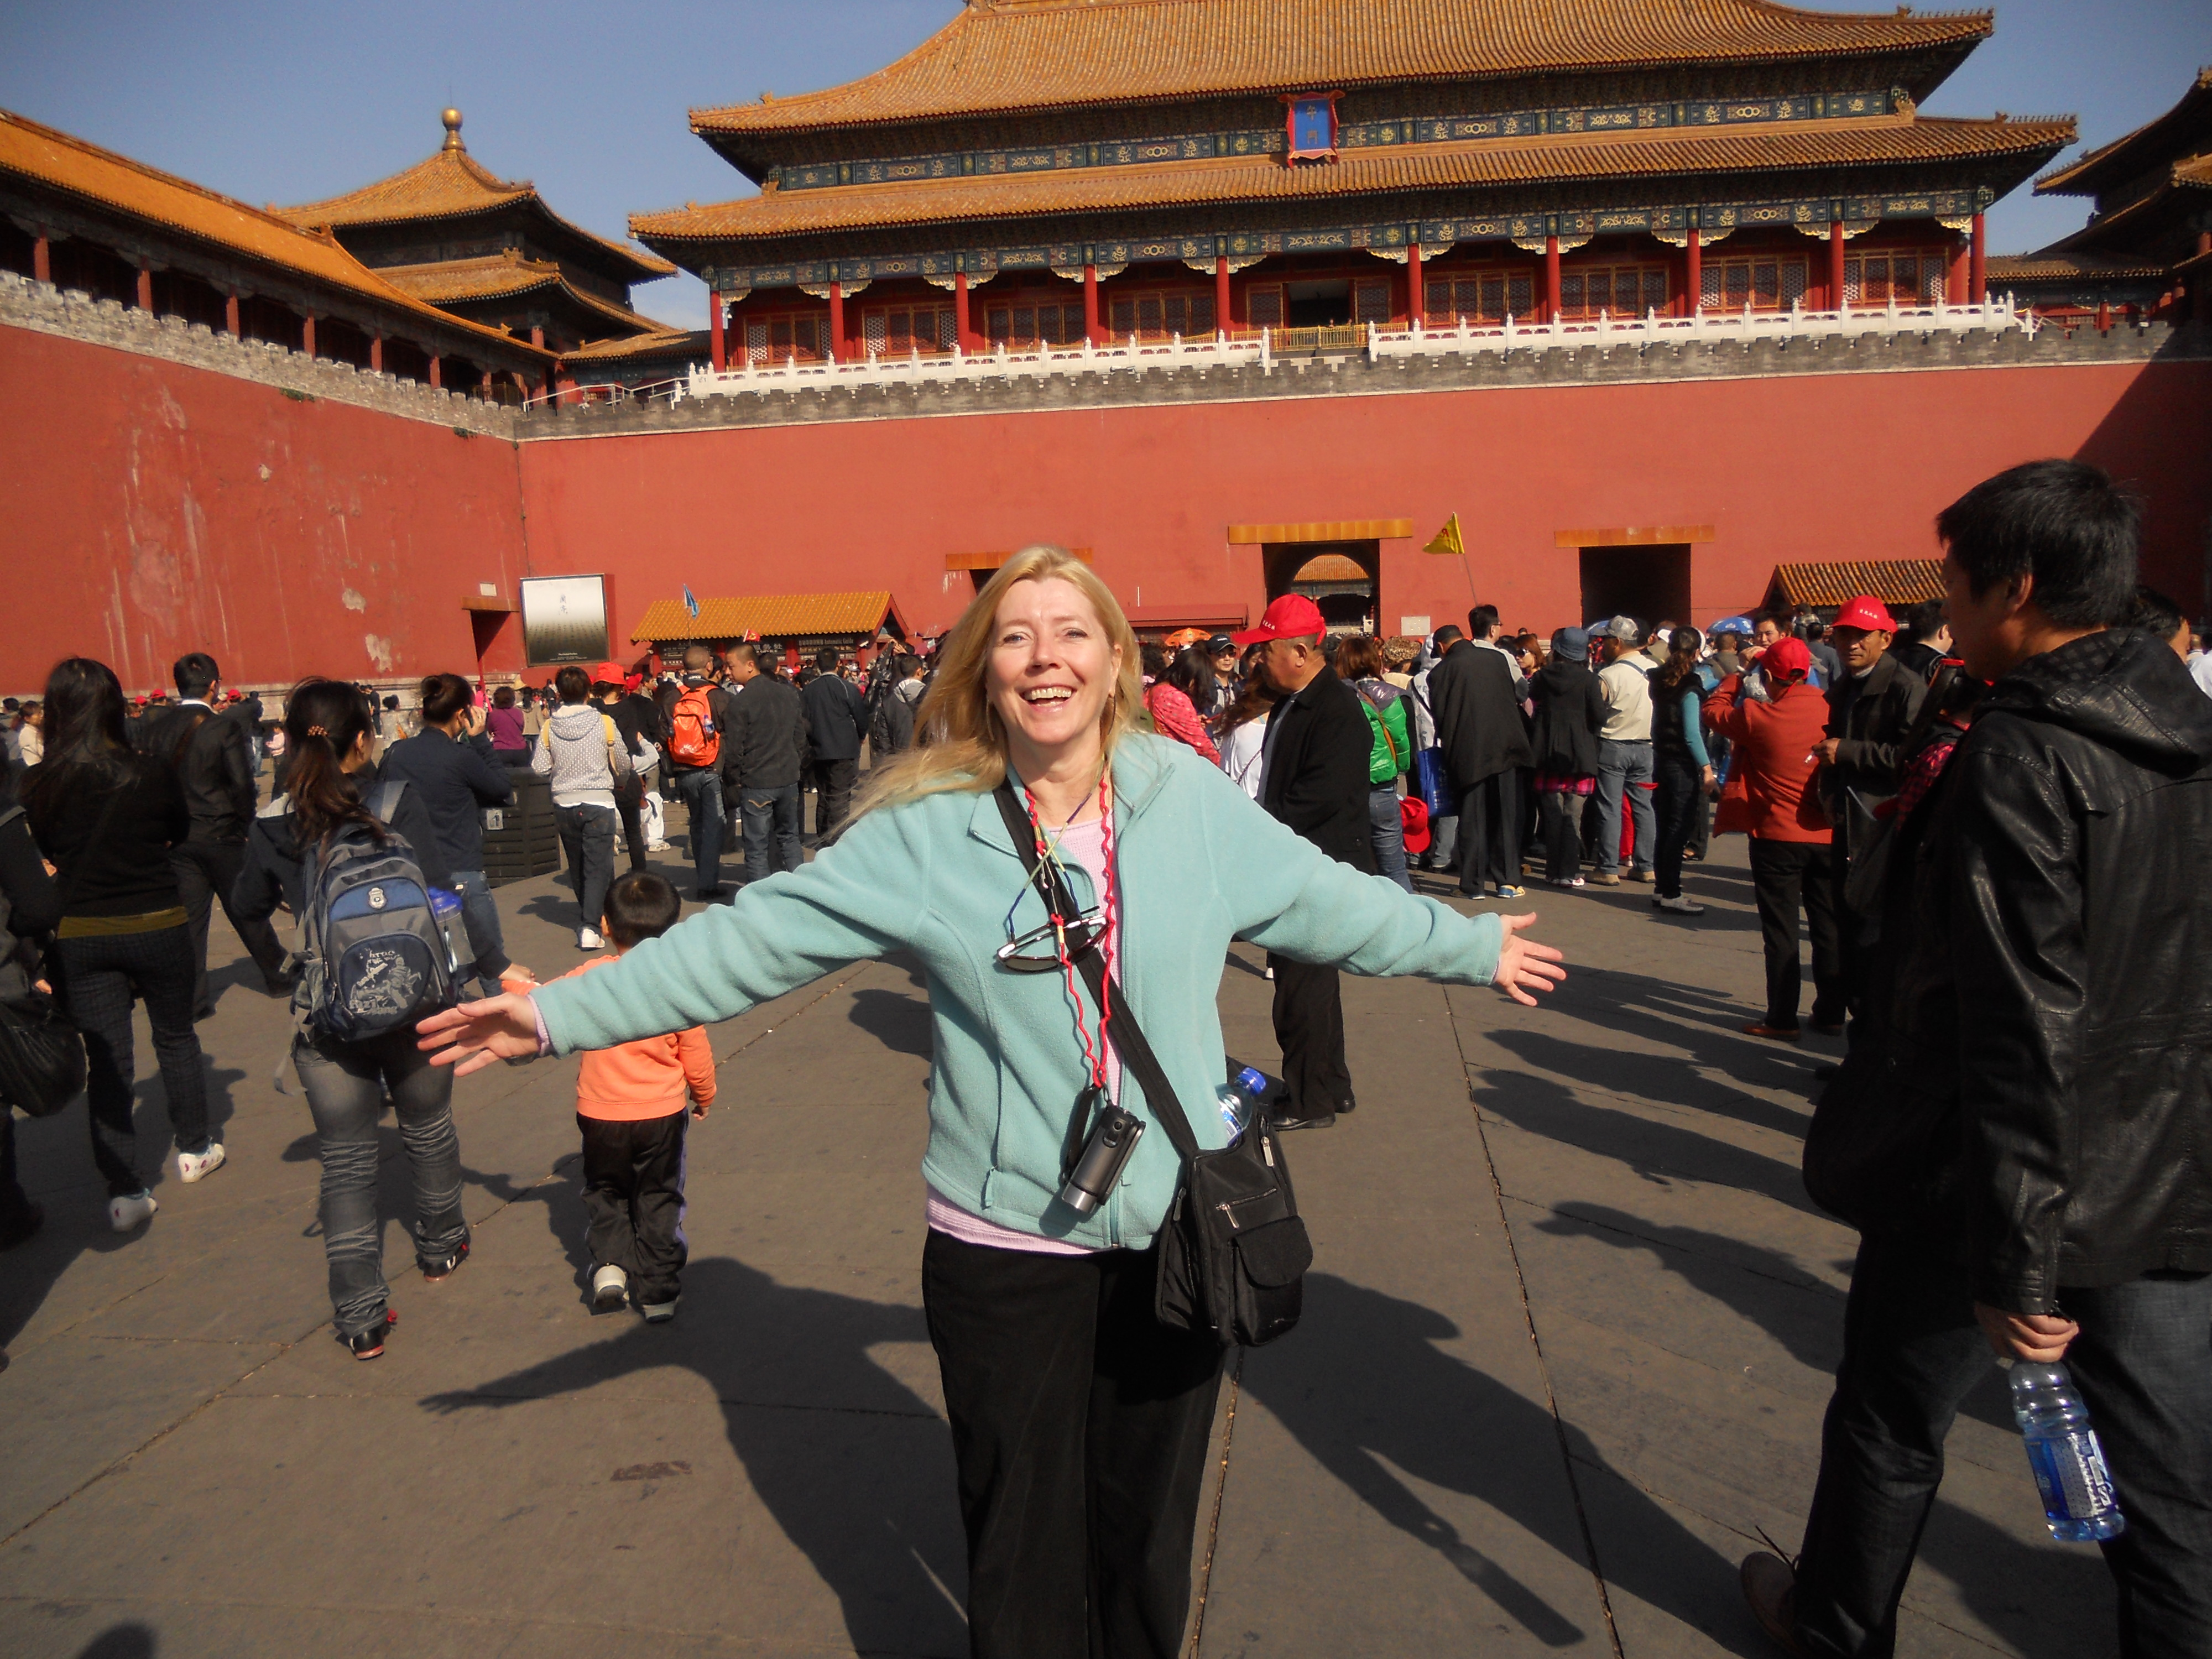 Diana Osberg at the Forbidden City in Beijing